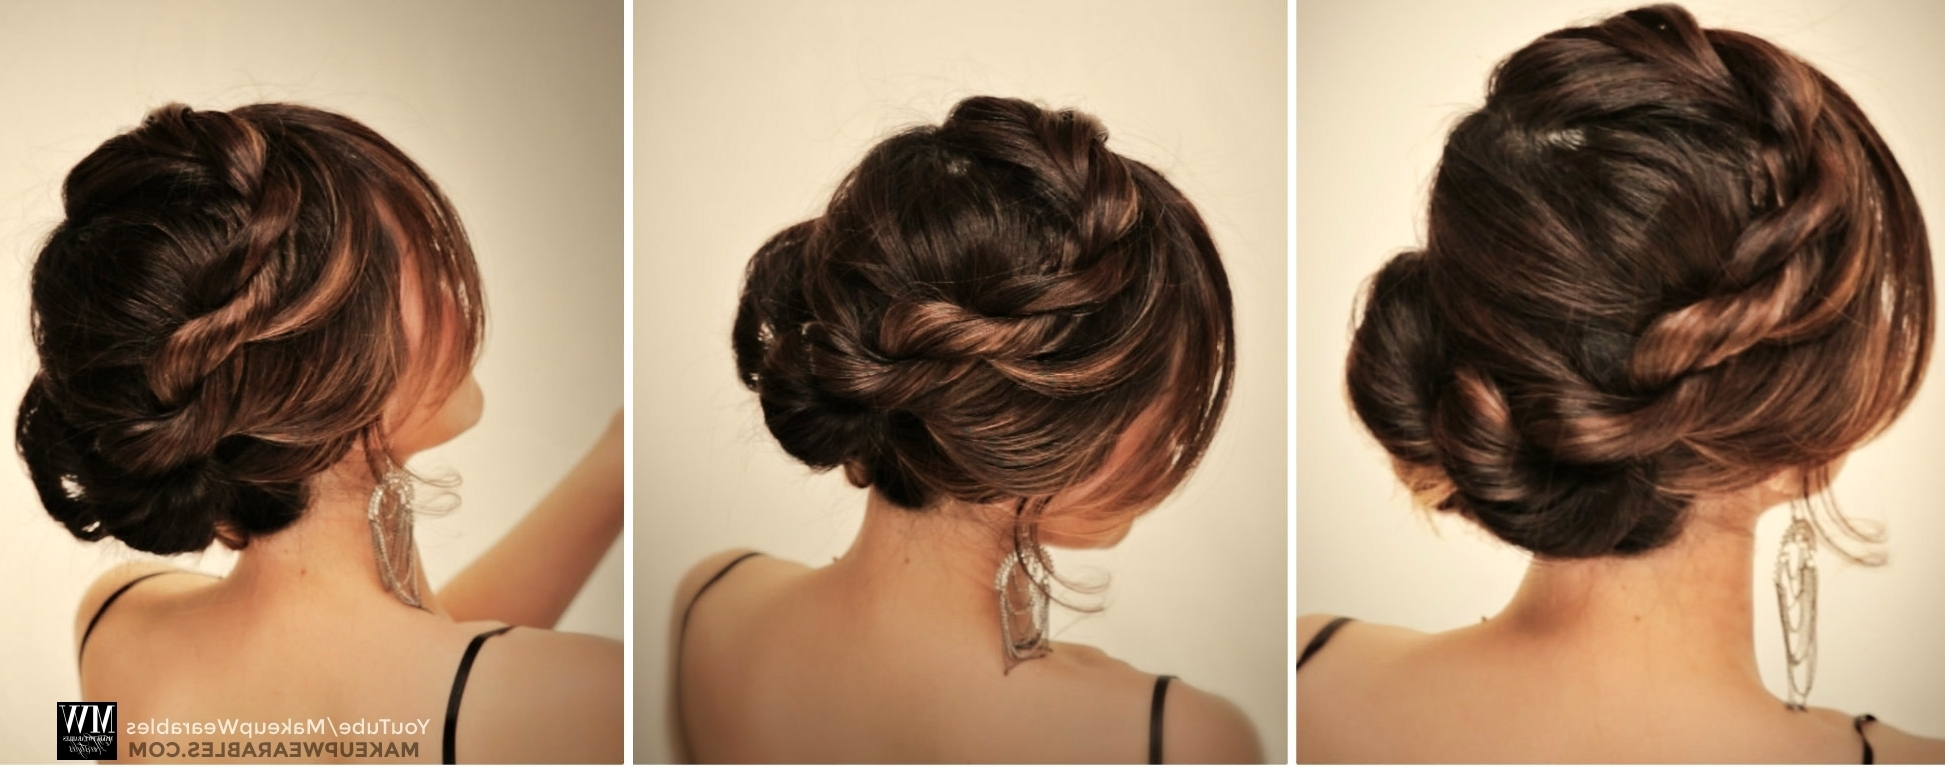 How To: 5 Amazingly Cute + Easy Hairstyles With A Simple Twist Throughout Messy Hair Updo Hairstyles For Long Hair (View 10 of 15)